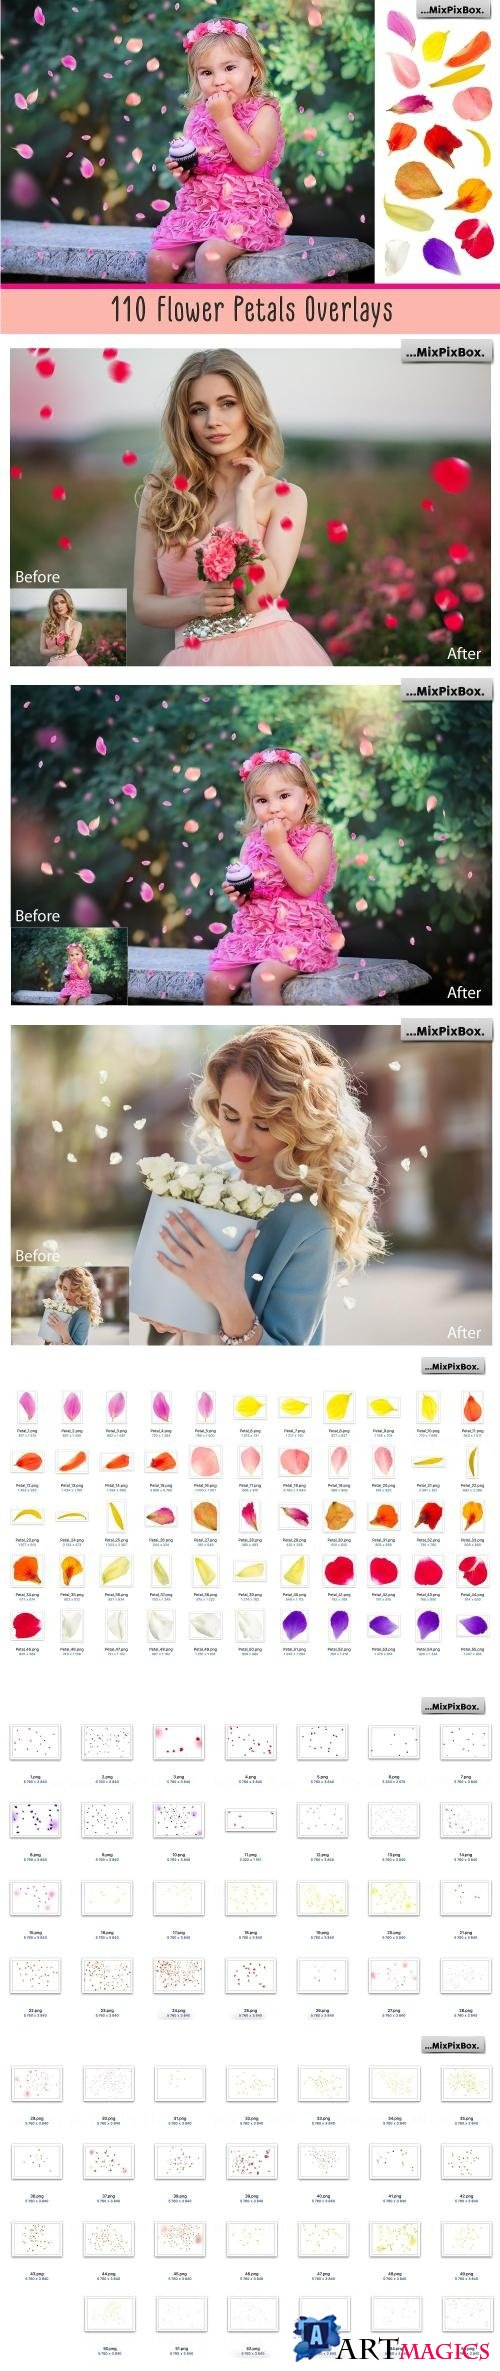 Flower Petals Photo Overlays - 3399998